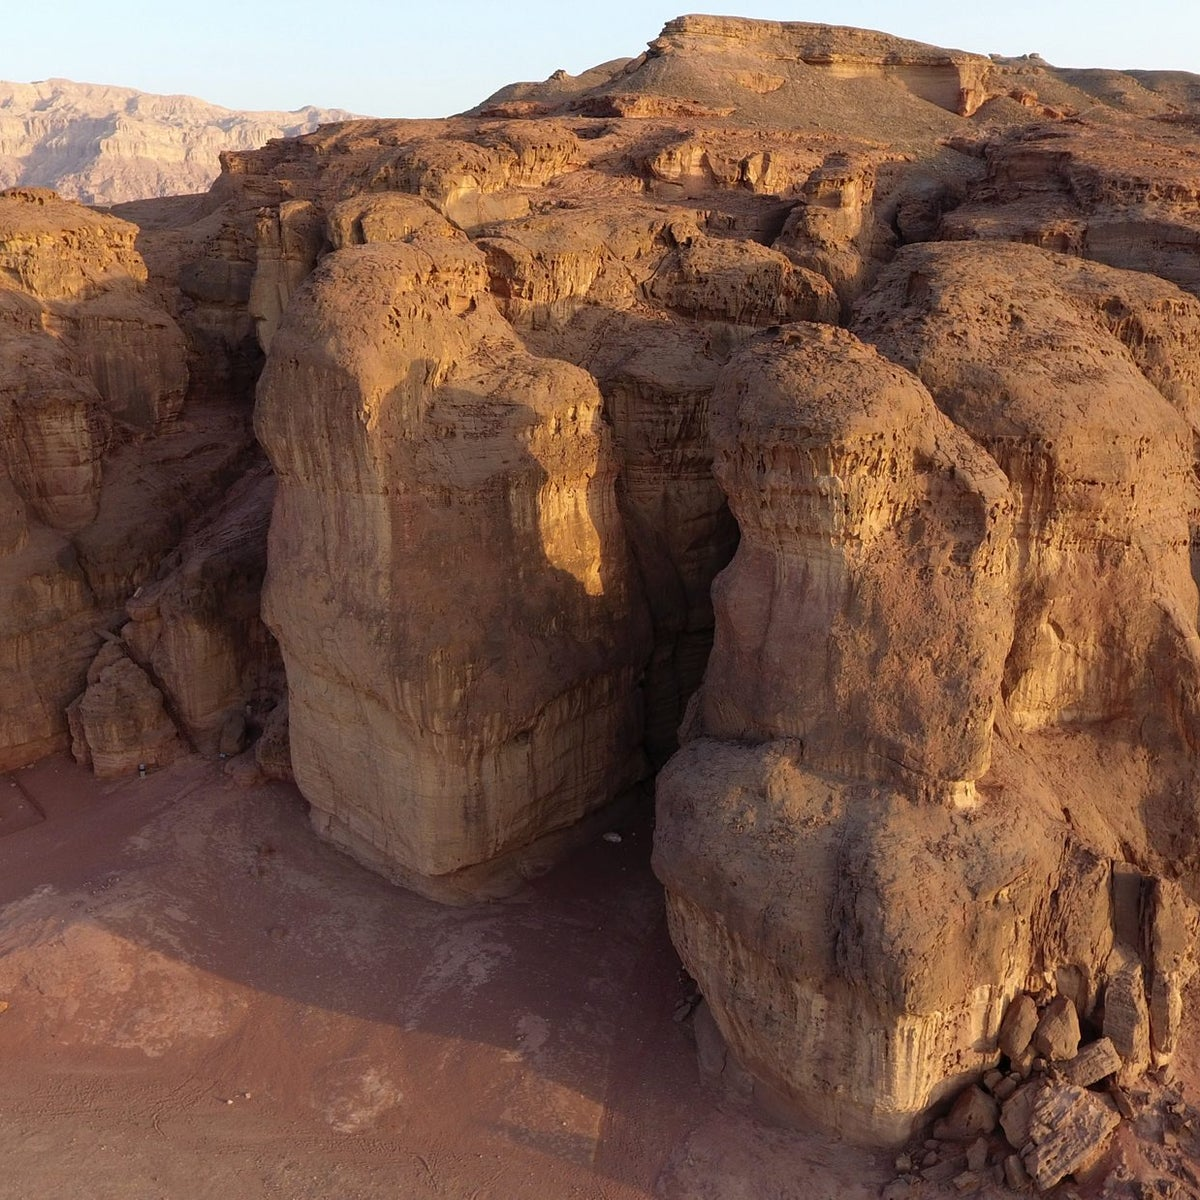 The ancient copper mines at Timna